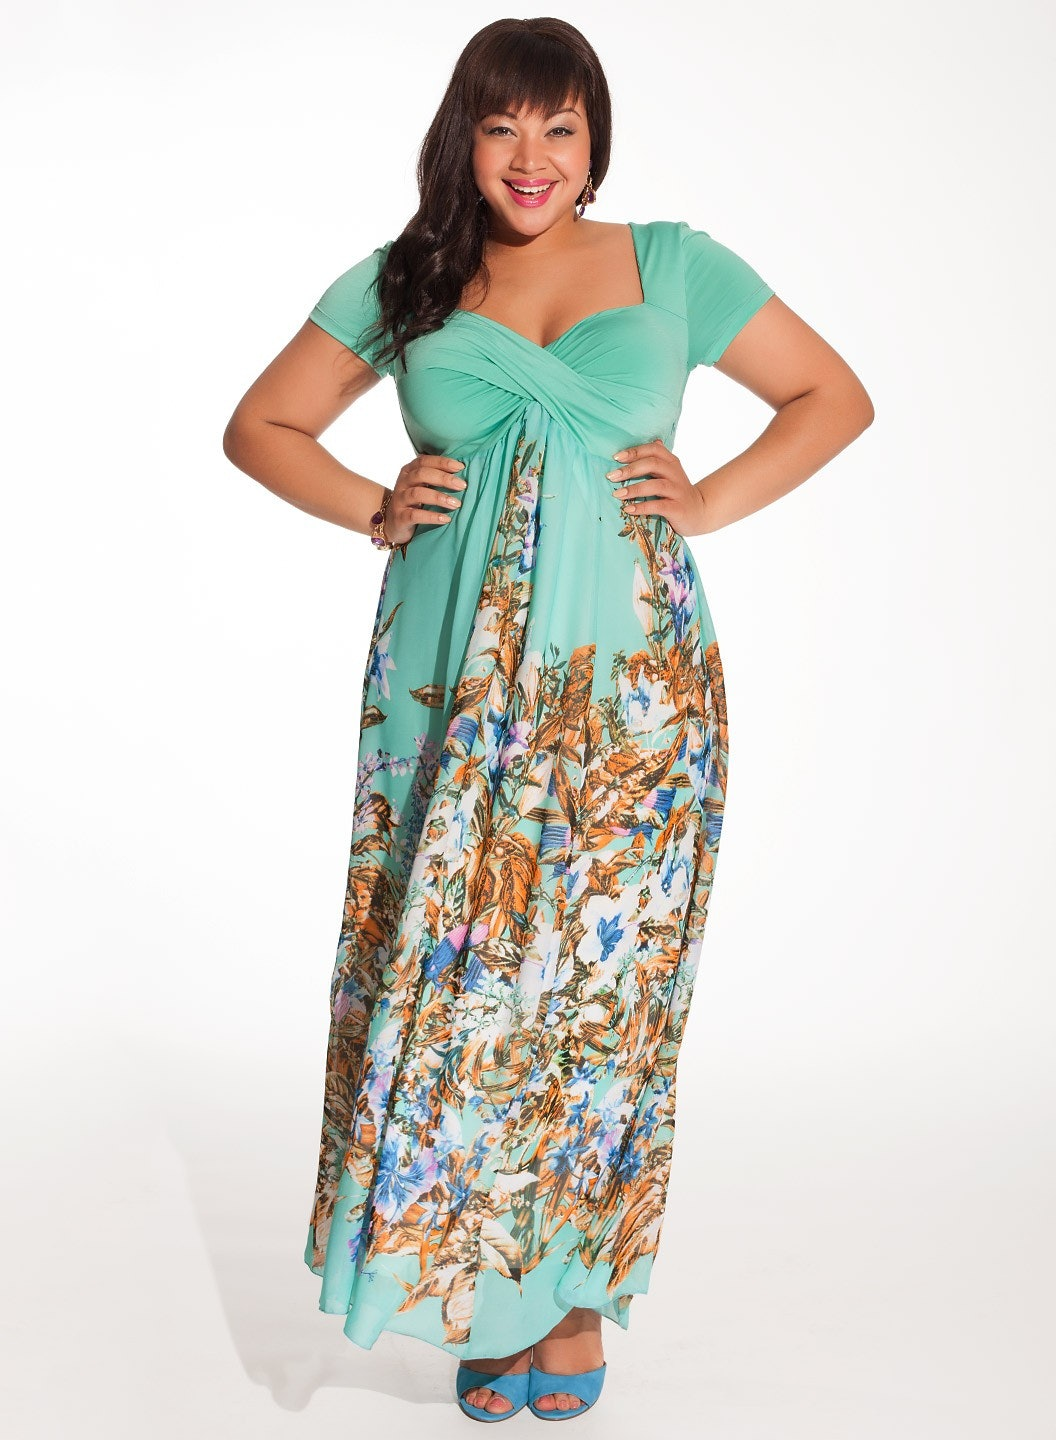 Pics For Dresses To Wear To A Summer Wedding 2014